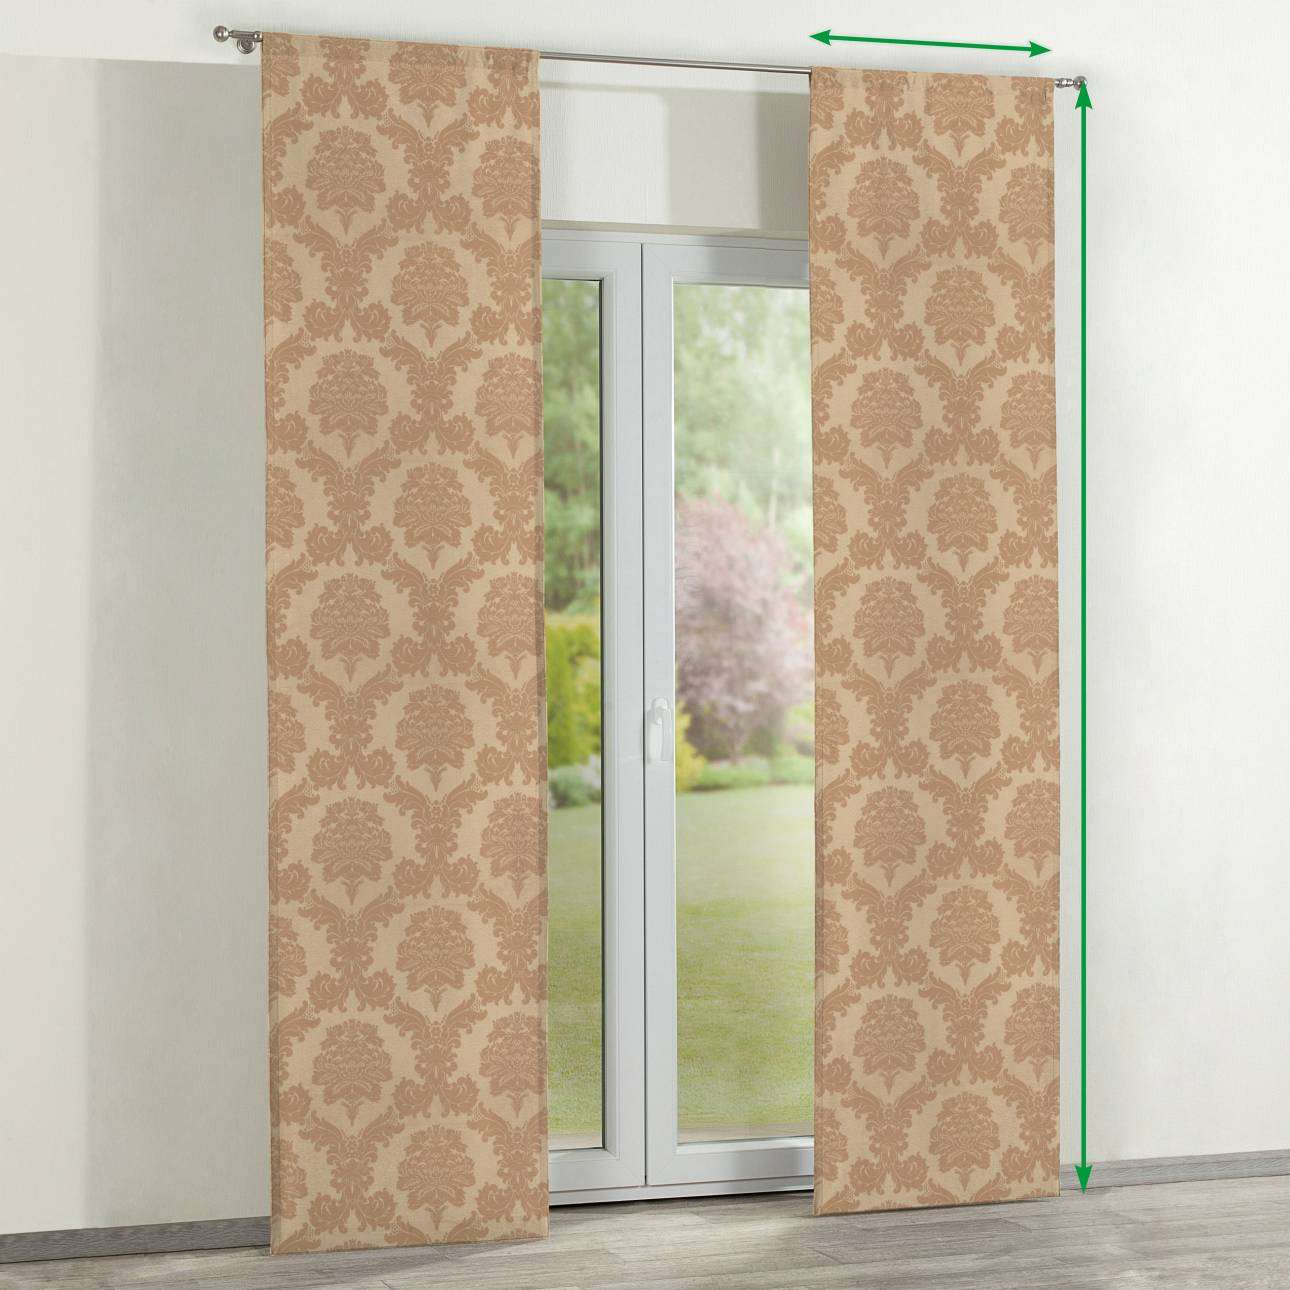 Slot panel curtains – Set of 2 in collection Damasco, fabric: 613-04